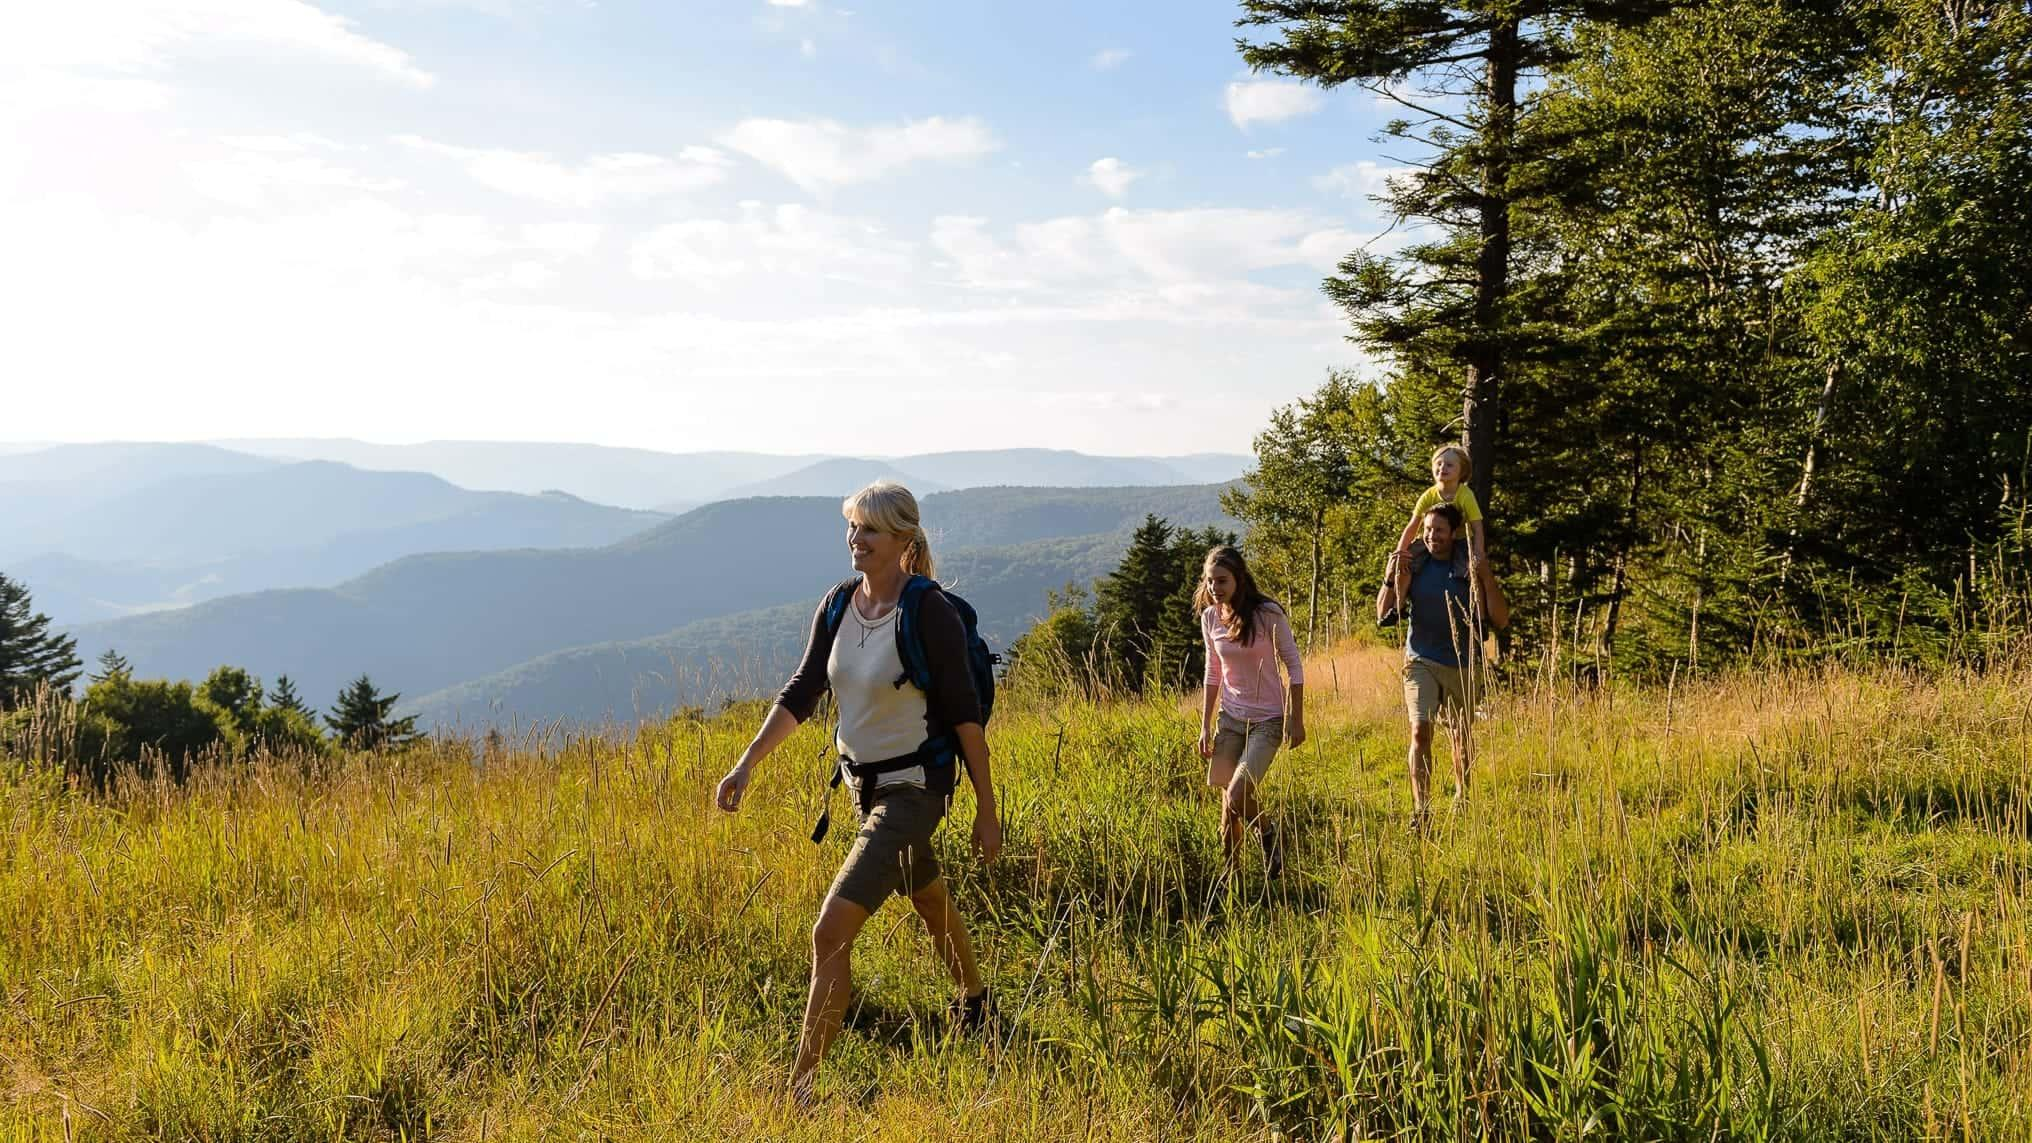 Enjoy Summer hiking in the beautiful WV mountains of Pocahontas County!